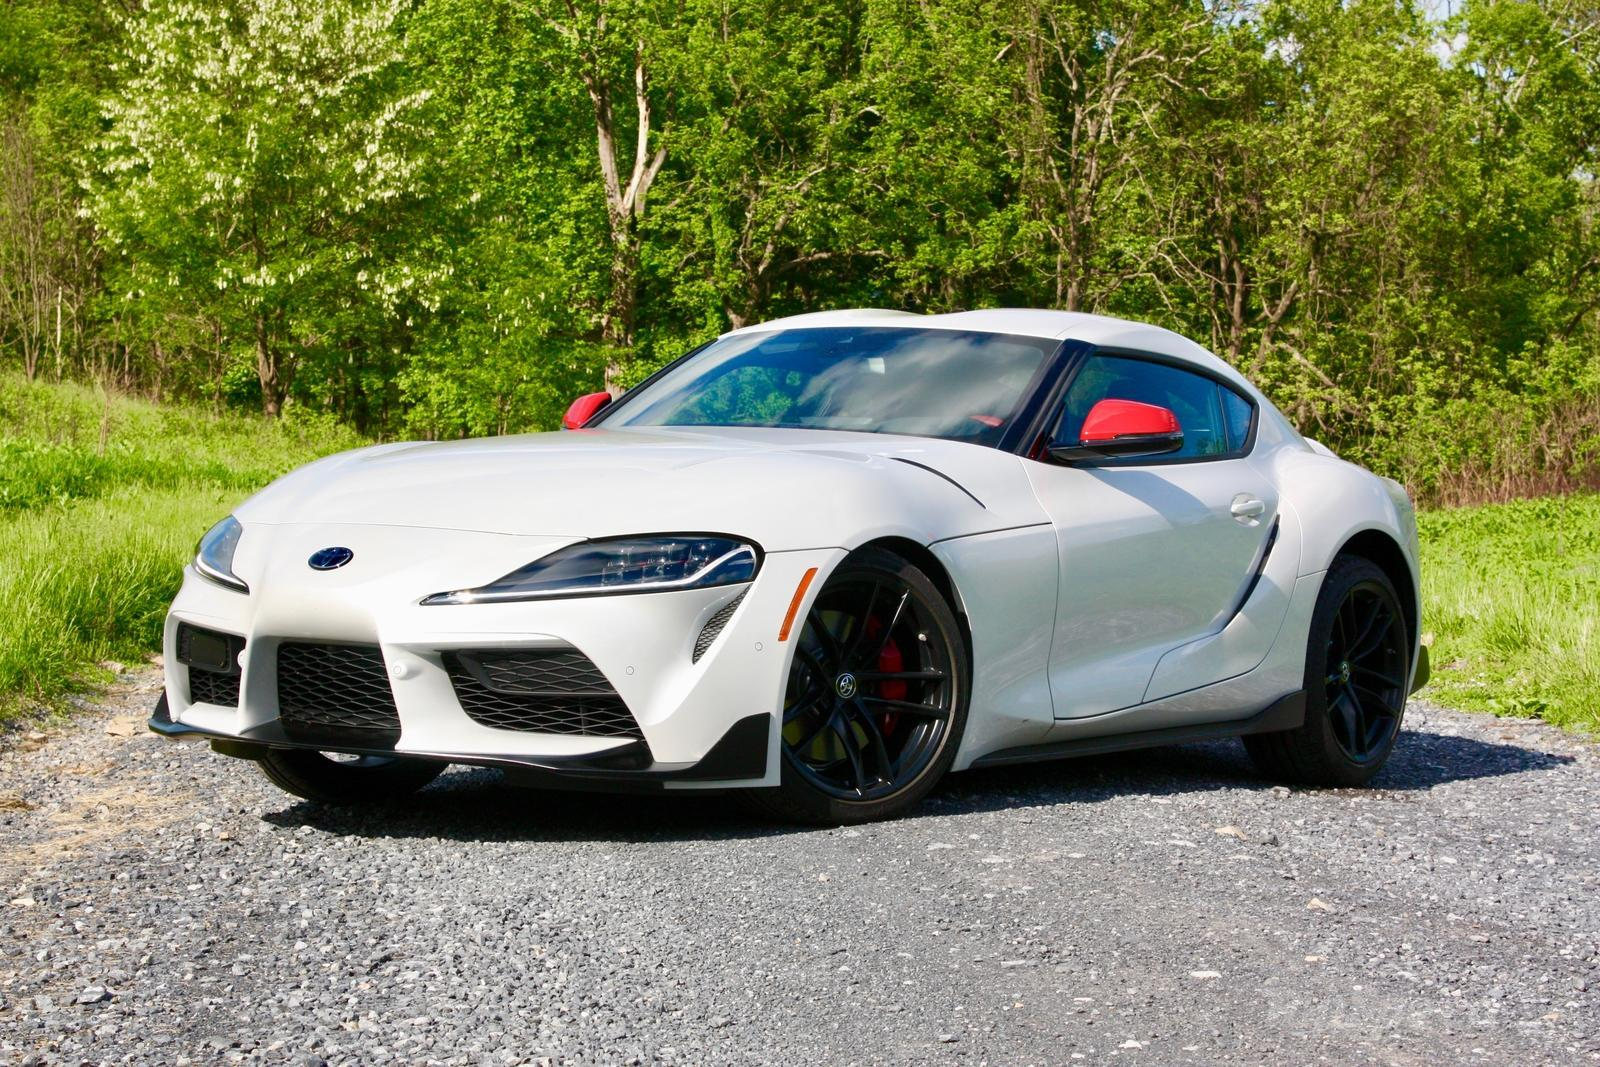 Toyota Supra: Latest News, Reviews, Specifications, Prices ...